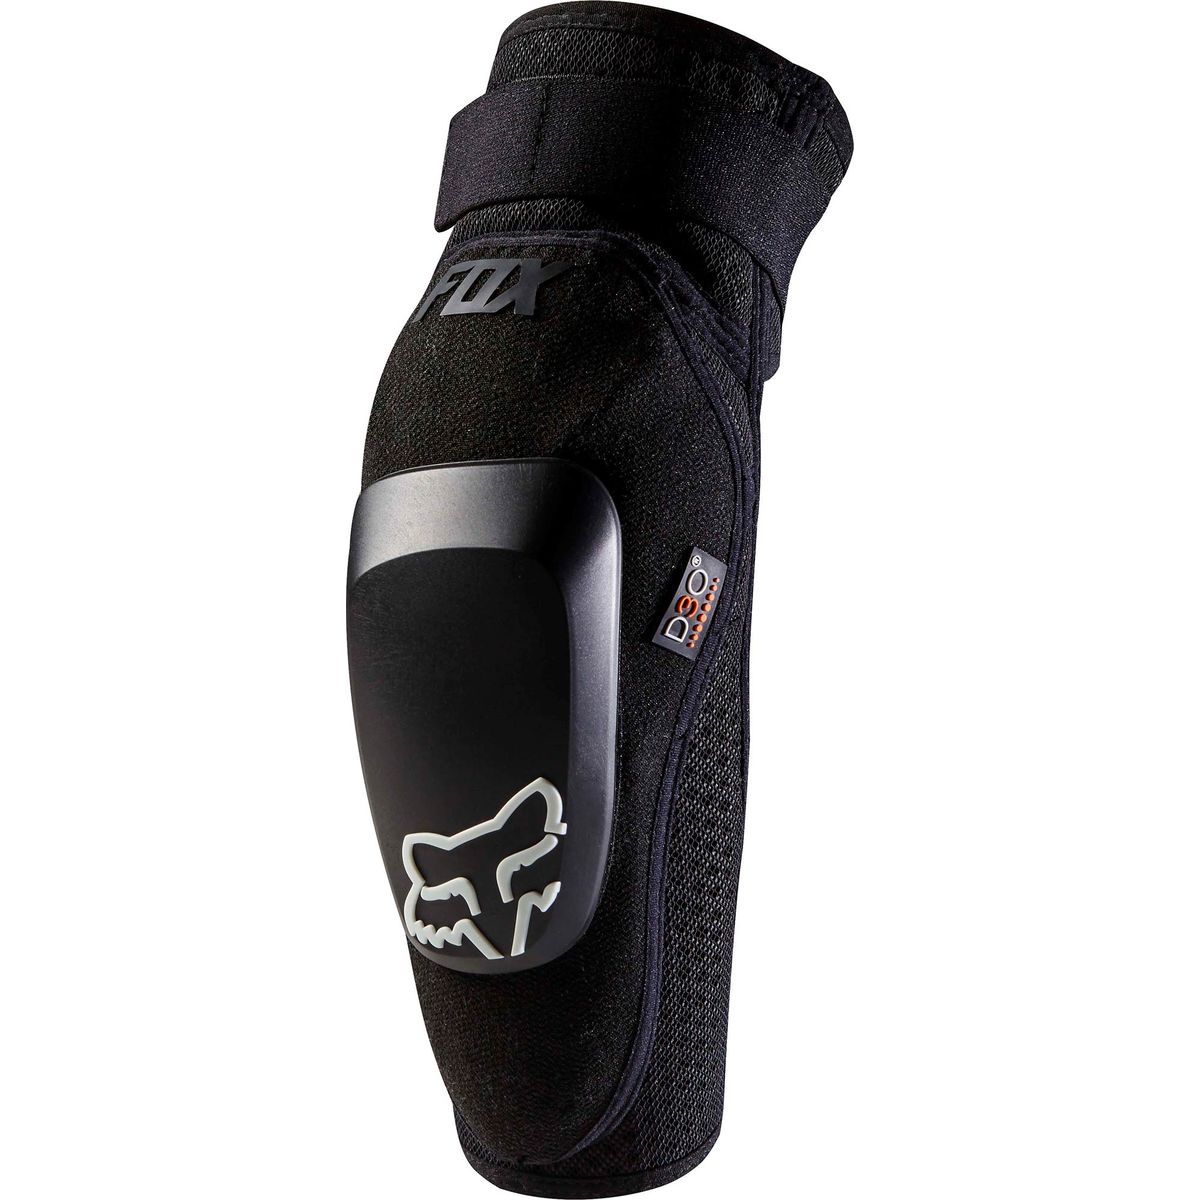 LAUNCH PRO D30 ELBOW GUARDS